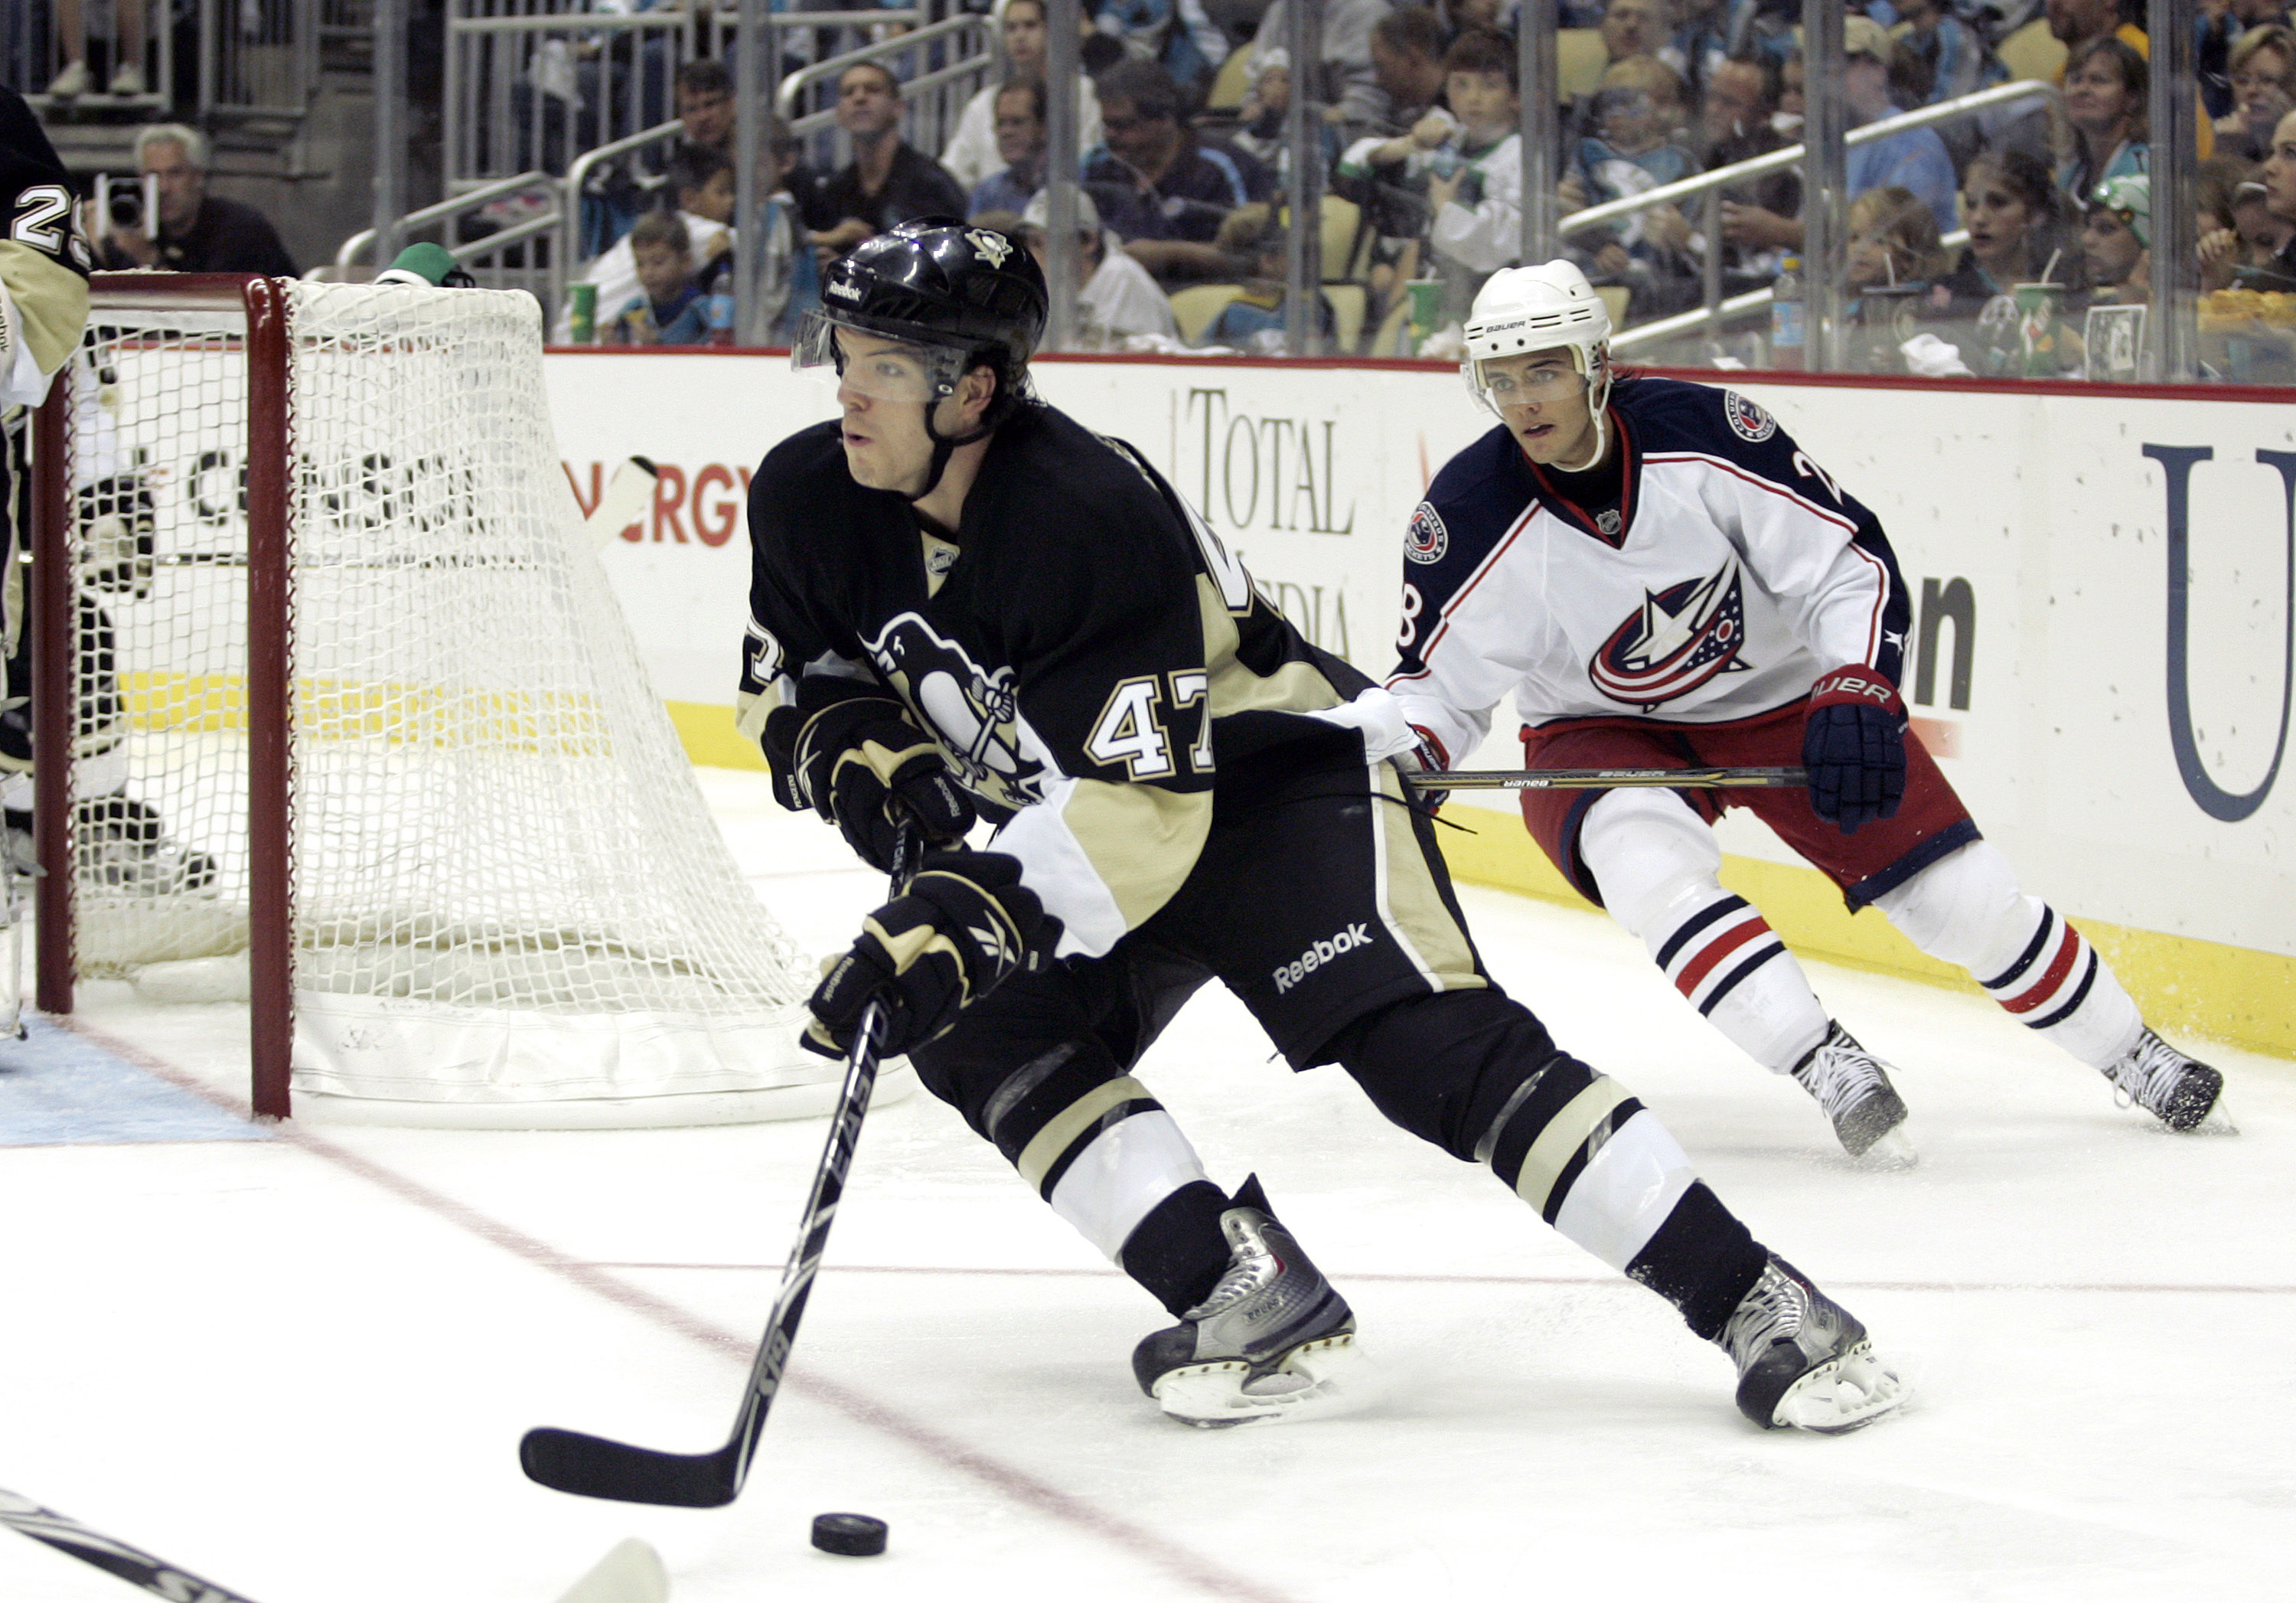 PITTSBURGH - SEPTEMBER 25:  Simon Despres #47 of the Pittsburgh Penguins handles the puck against the Columbus Blue Jackets at Consol Energy Center on September 25, 2010 in Pittsburgh, Pennsylvania.  (Photo by Justin K. Aller/Getty Images)